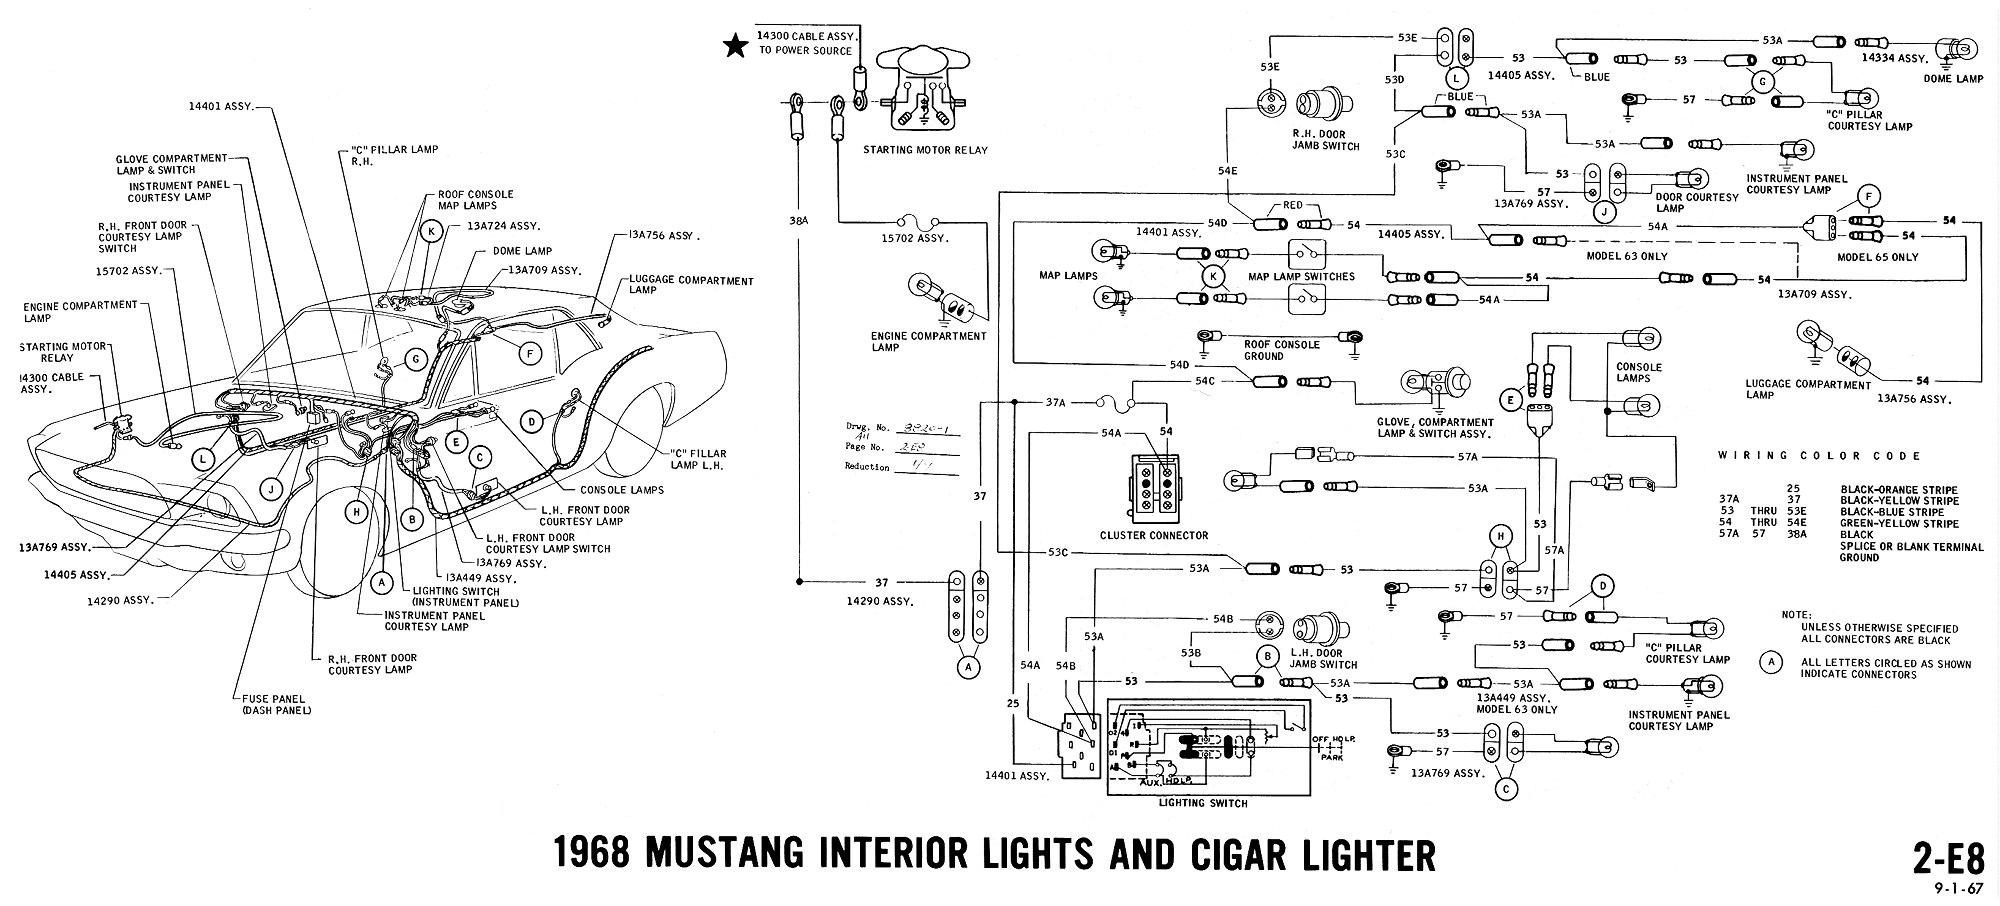 Diagram Wiring Fs Schematic 400 130520062 Library 1978 Chevrolet El Camino 1968 Mustang Diagrams Evolving Software 1967 Chevelle Online Specifications